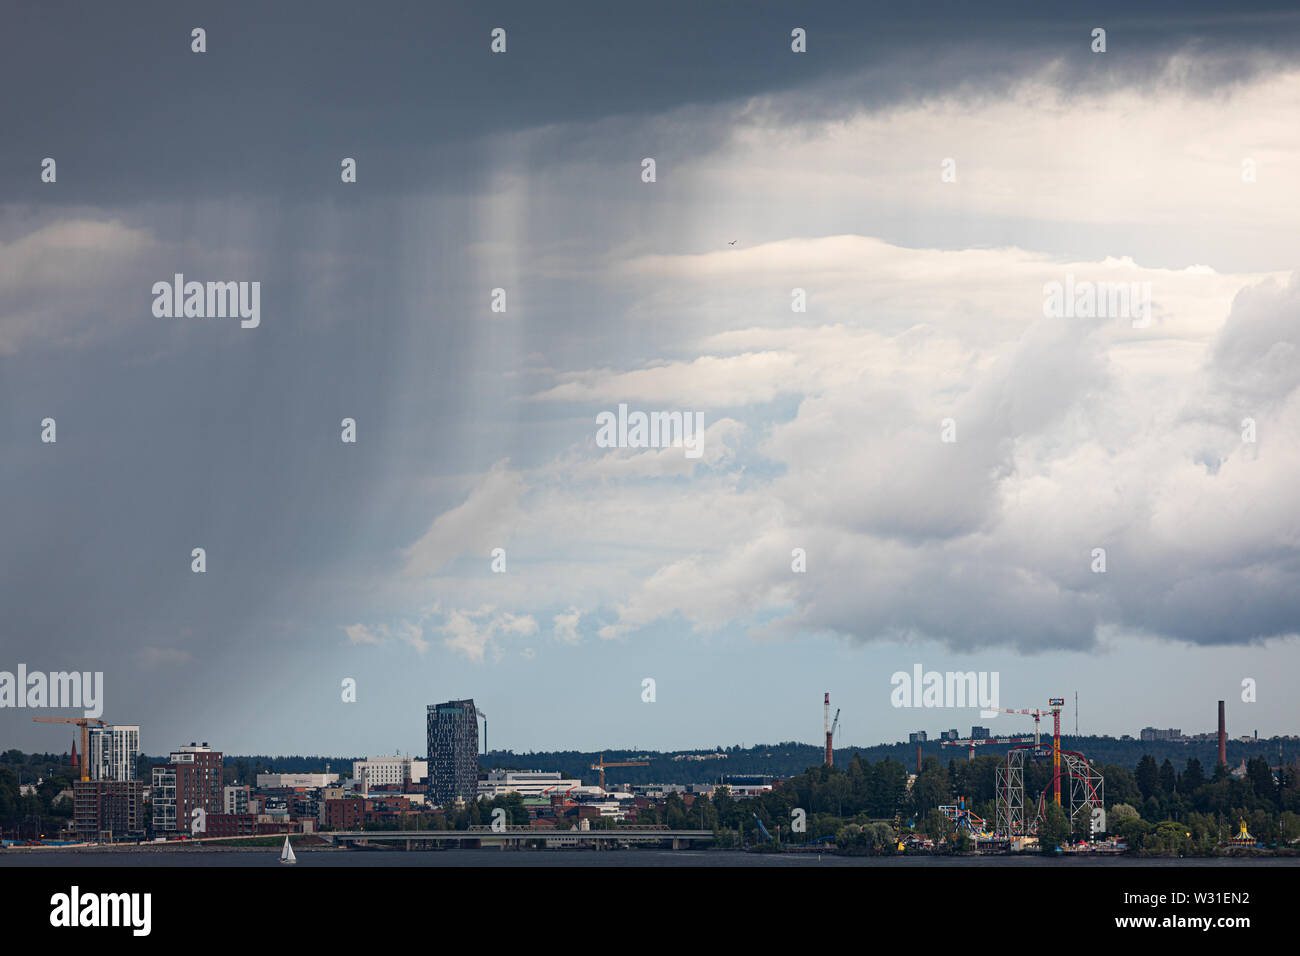 Summer day raining sky viewed from far - Stock Image